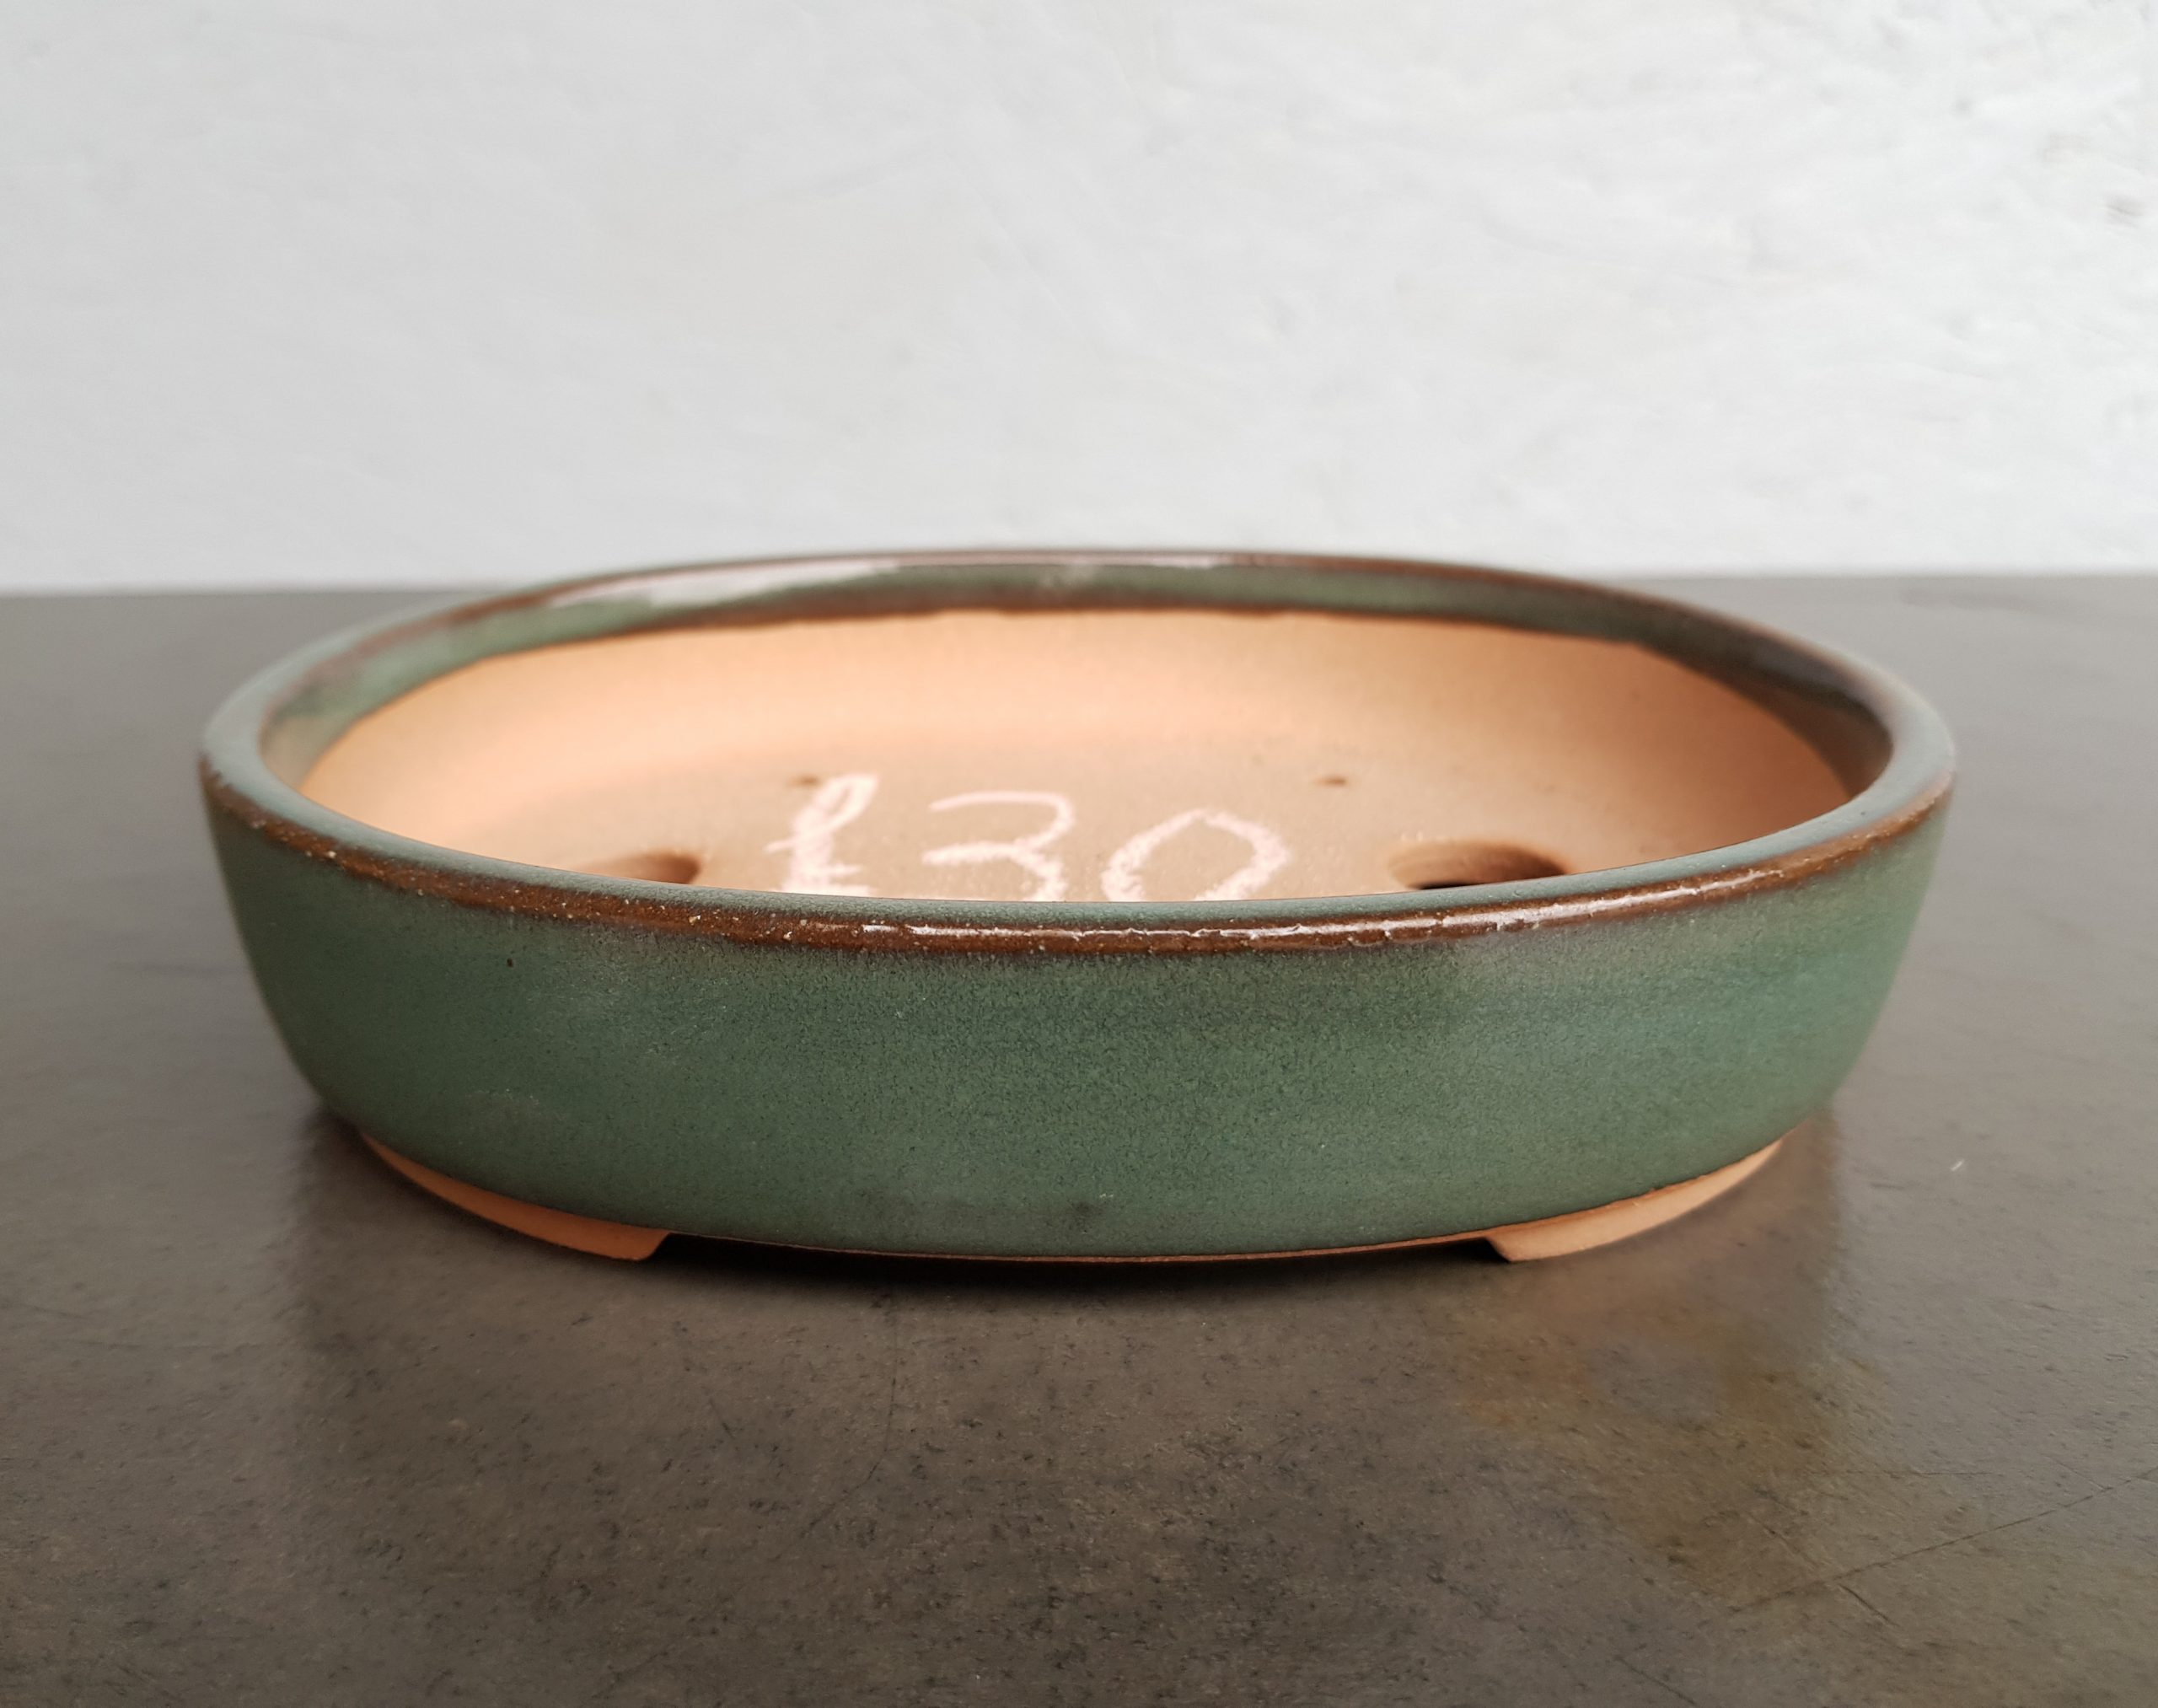 Chinese Teal/Green Glazed Oval